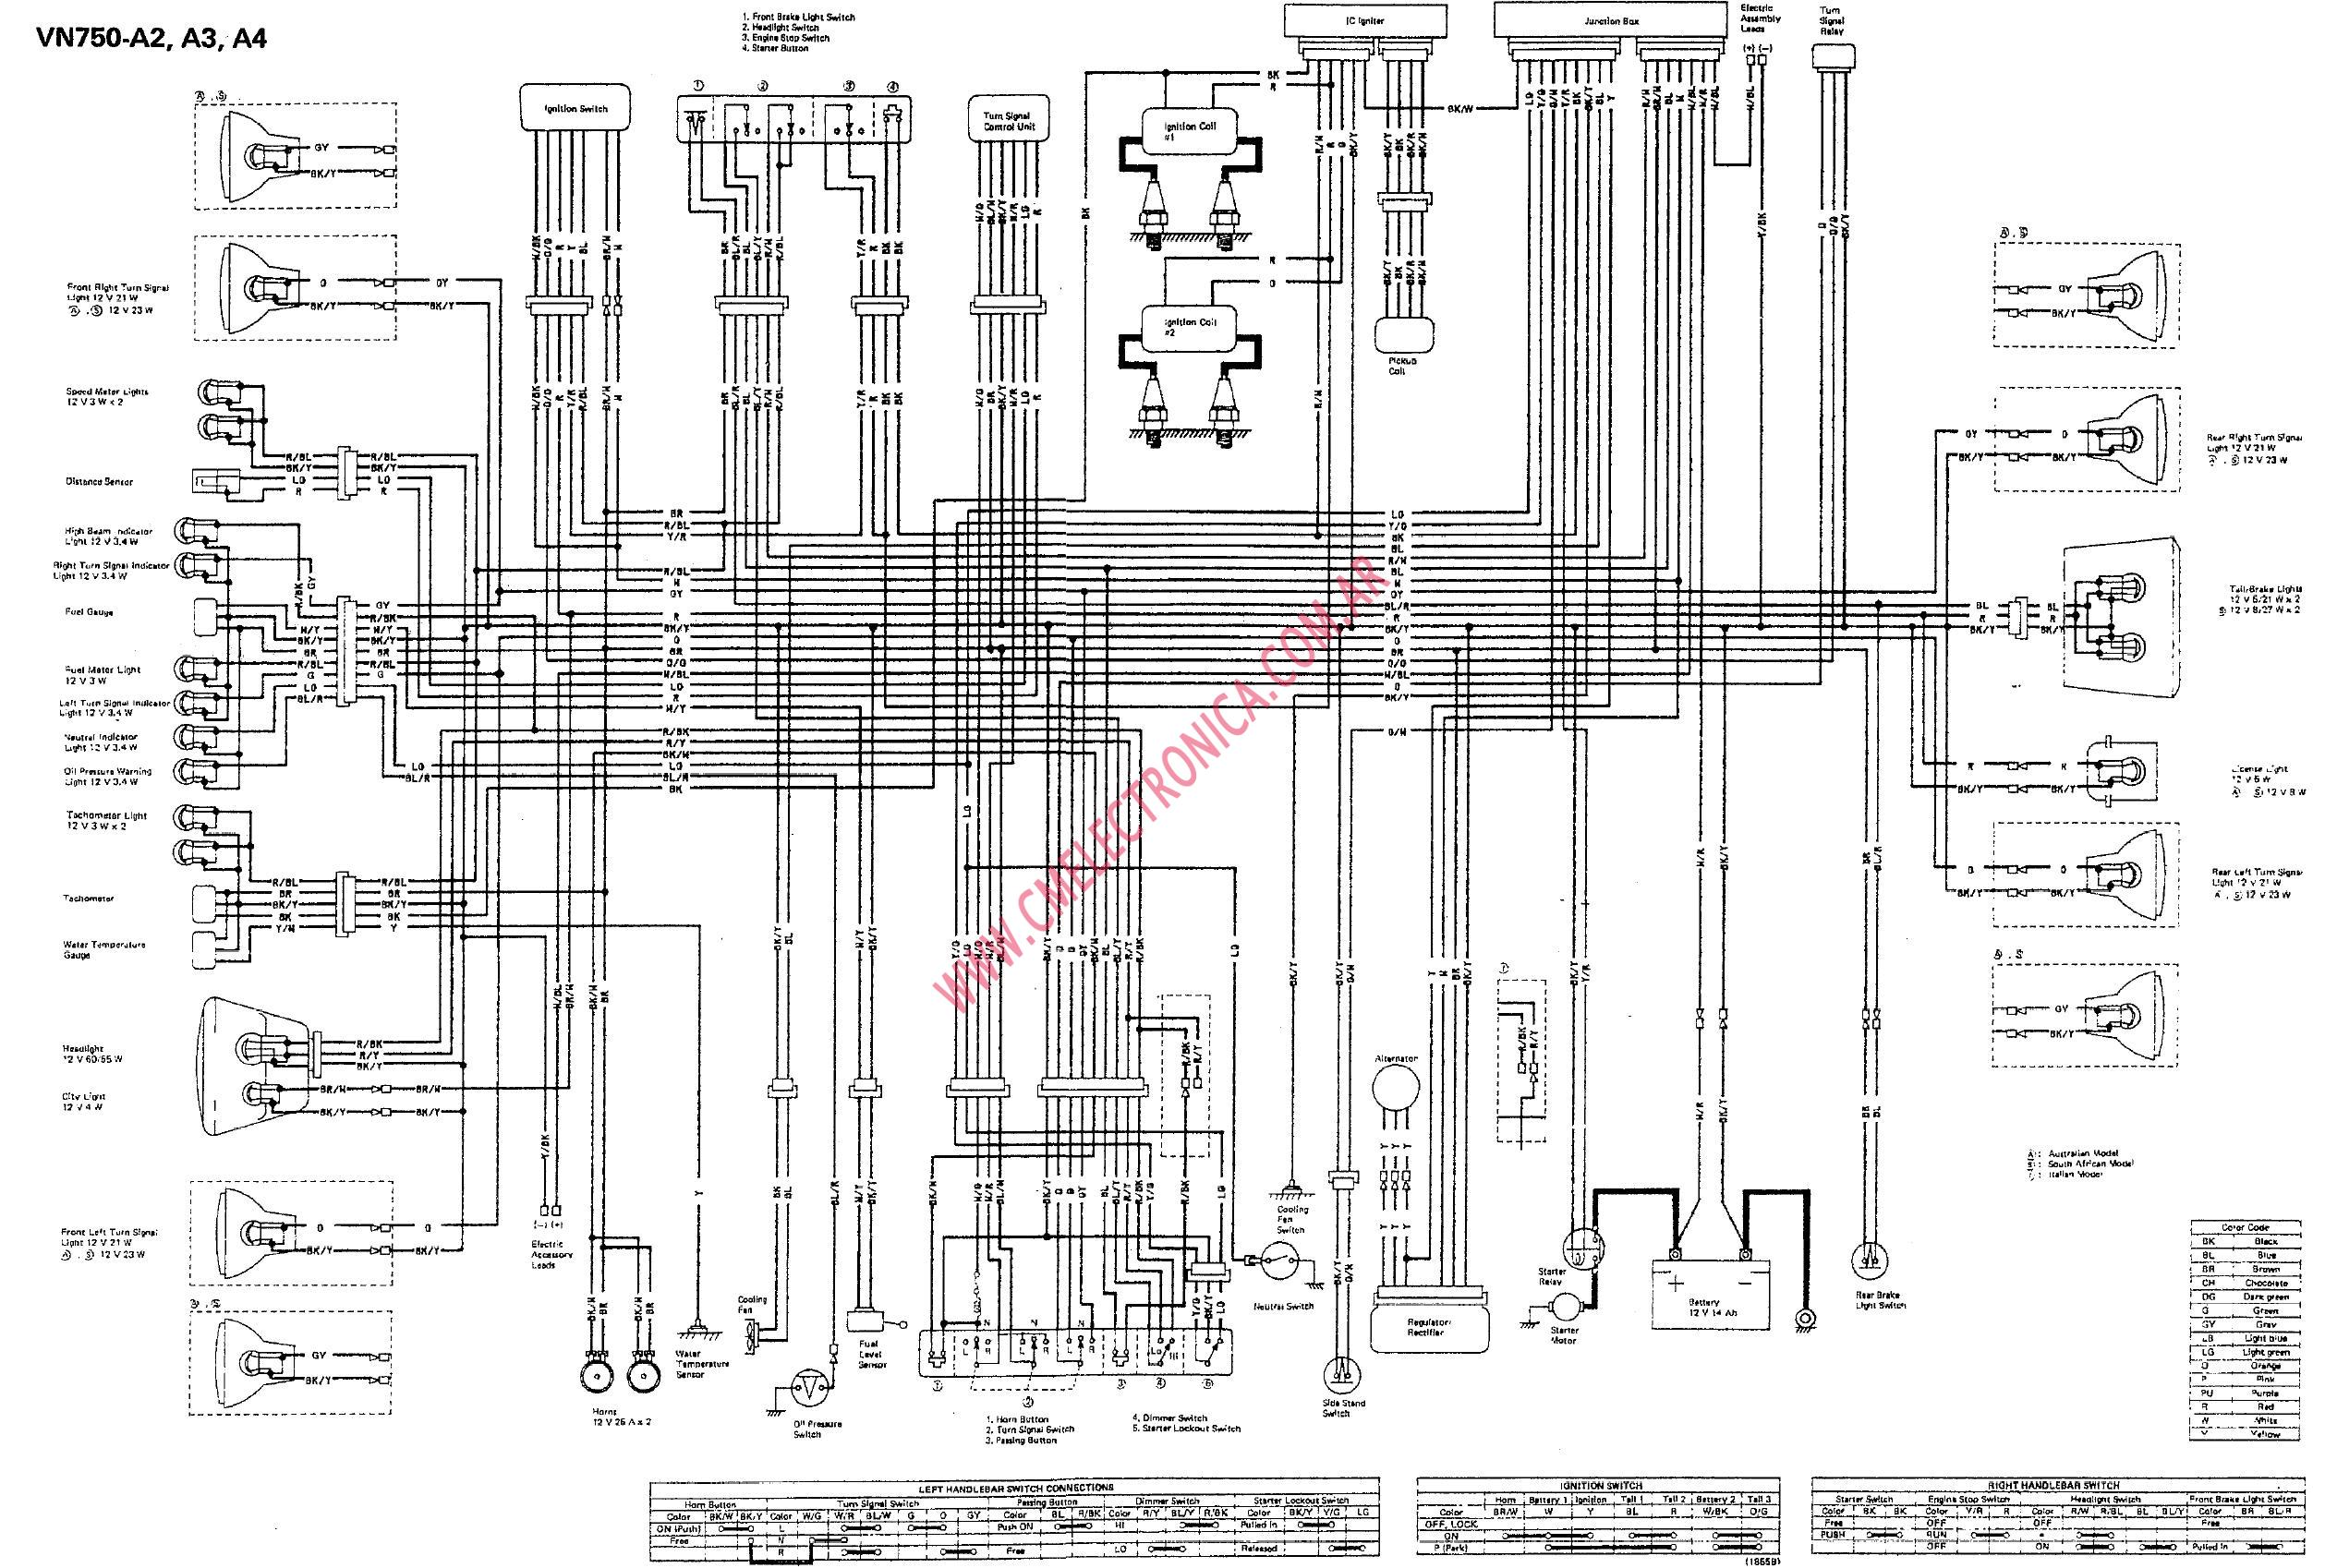 [DIAGRAM_4PO]  Wiring Diagram On 1995 Kawasaki Jet Ski -2011 F 450 Super Duty Fuse Panel  Diagram | Begeboy Wiring Diagram Source | Wiring Diagram On 1995 Kawasaki Jet Ski |  | Begeboy Wiring Diagram Source